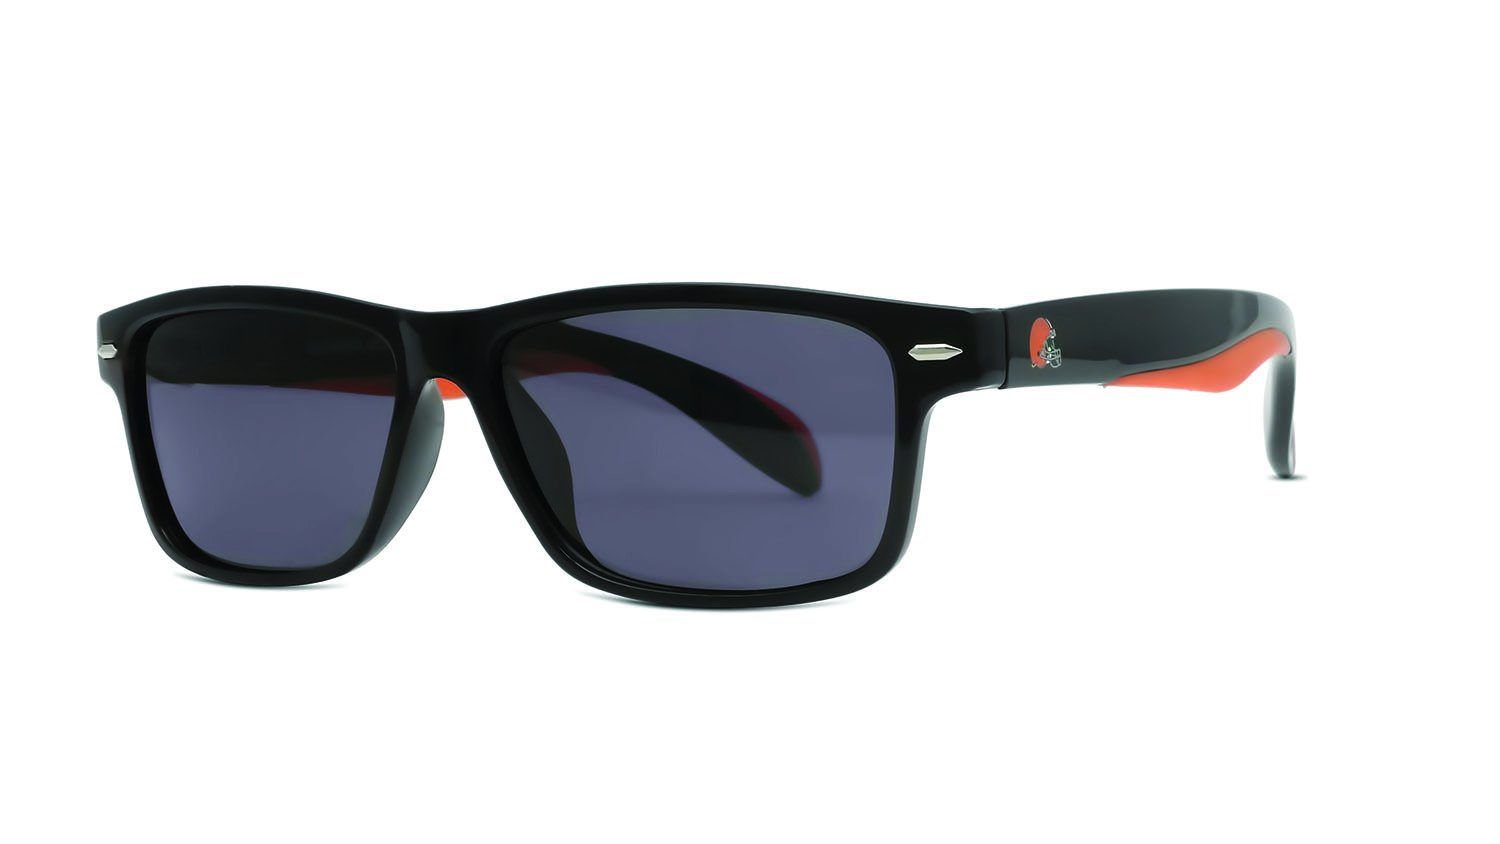 f224bec725e Nfl Wayfarer Sunglasses « One More Soul